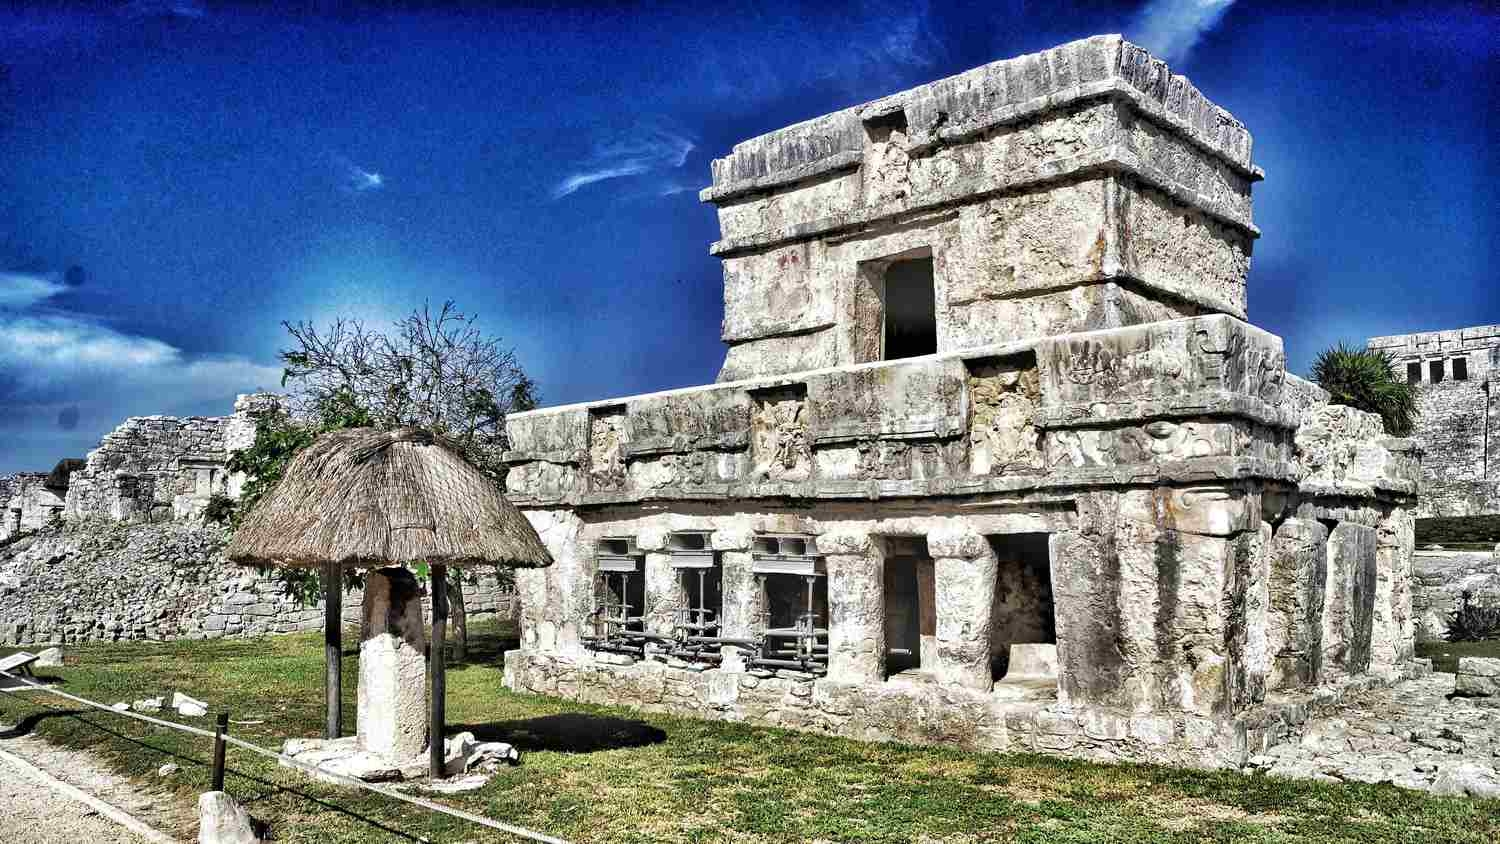 Ruins from the Mayan era that were once part of a huge empire surrounding Playa Del Carmen and the Riviera Maya.